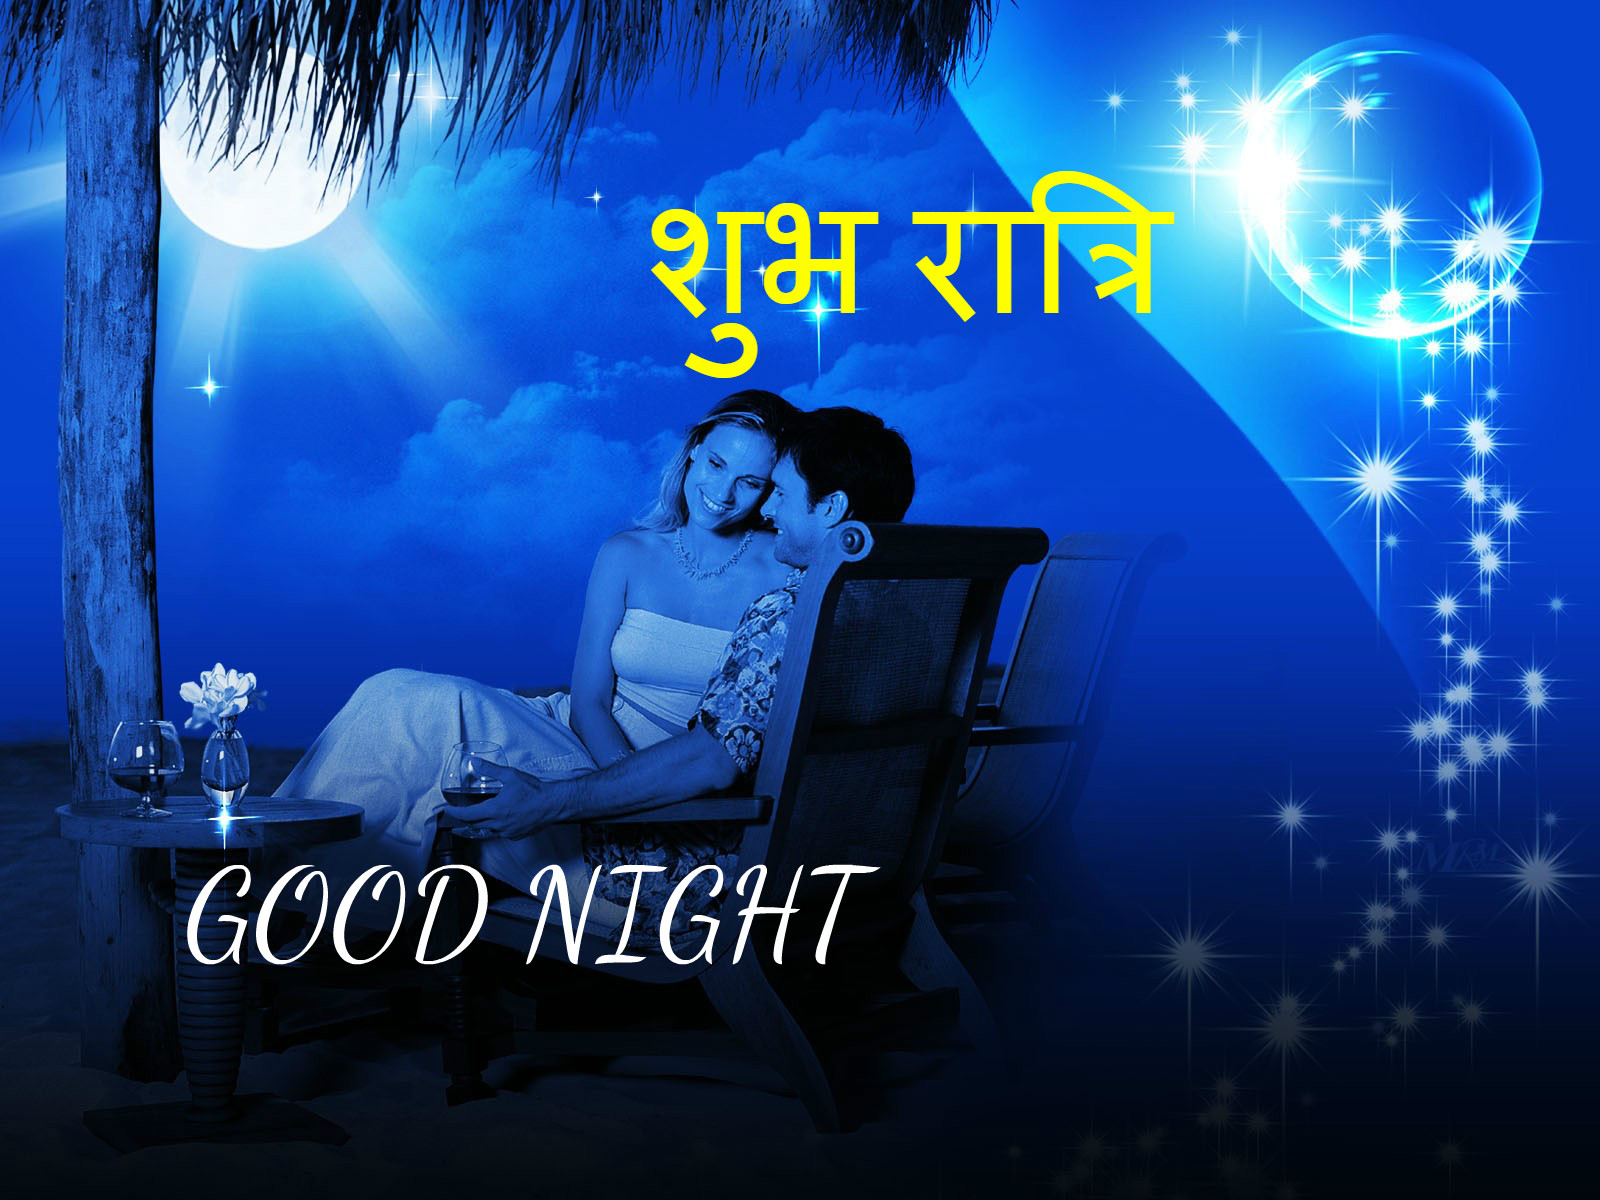 Good Night Wallpaper Love Sms : Sad Good Night Sms For Facebook: Sms urdu love funny ghazal english ` friend eid mubarak sad ...